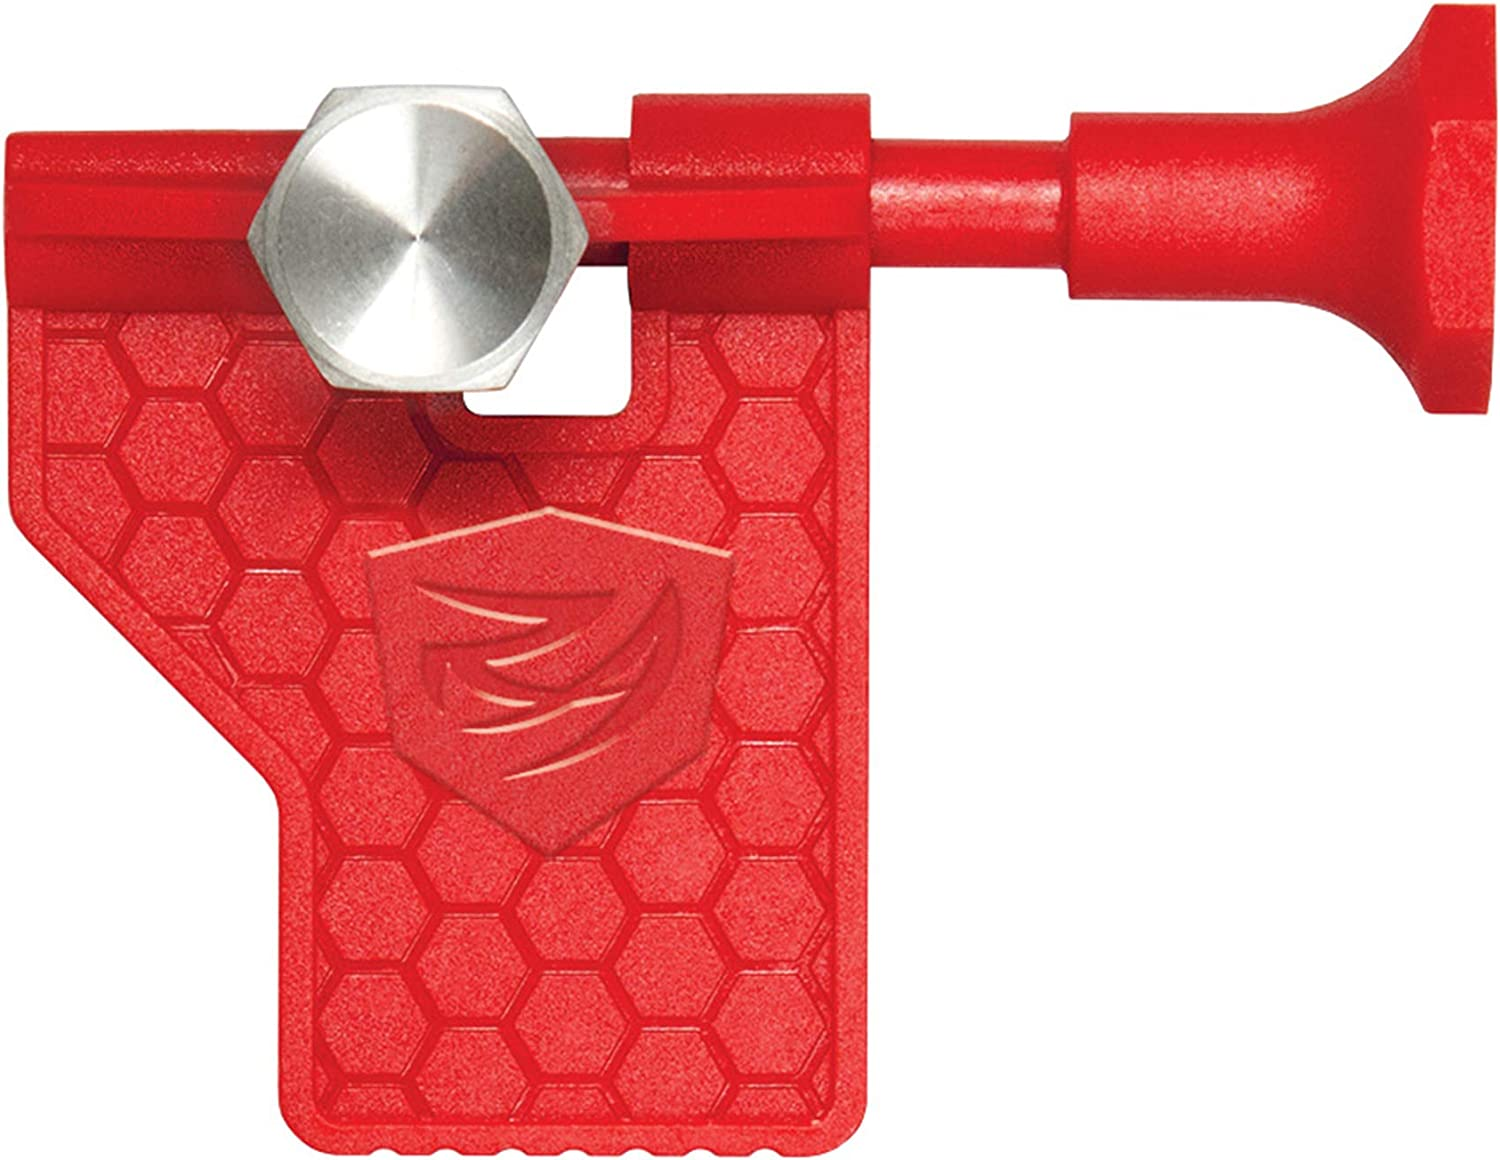 Real Avid Pivot Pin Tool (AVAR15PPT), Red